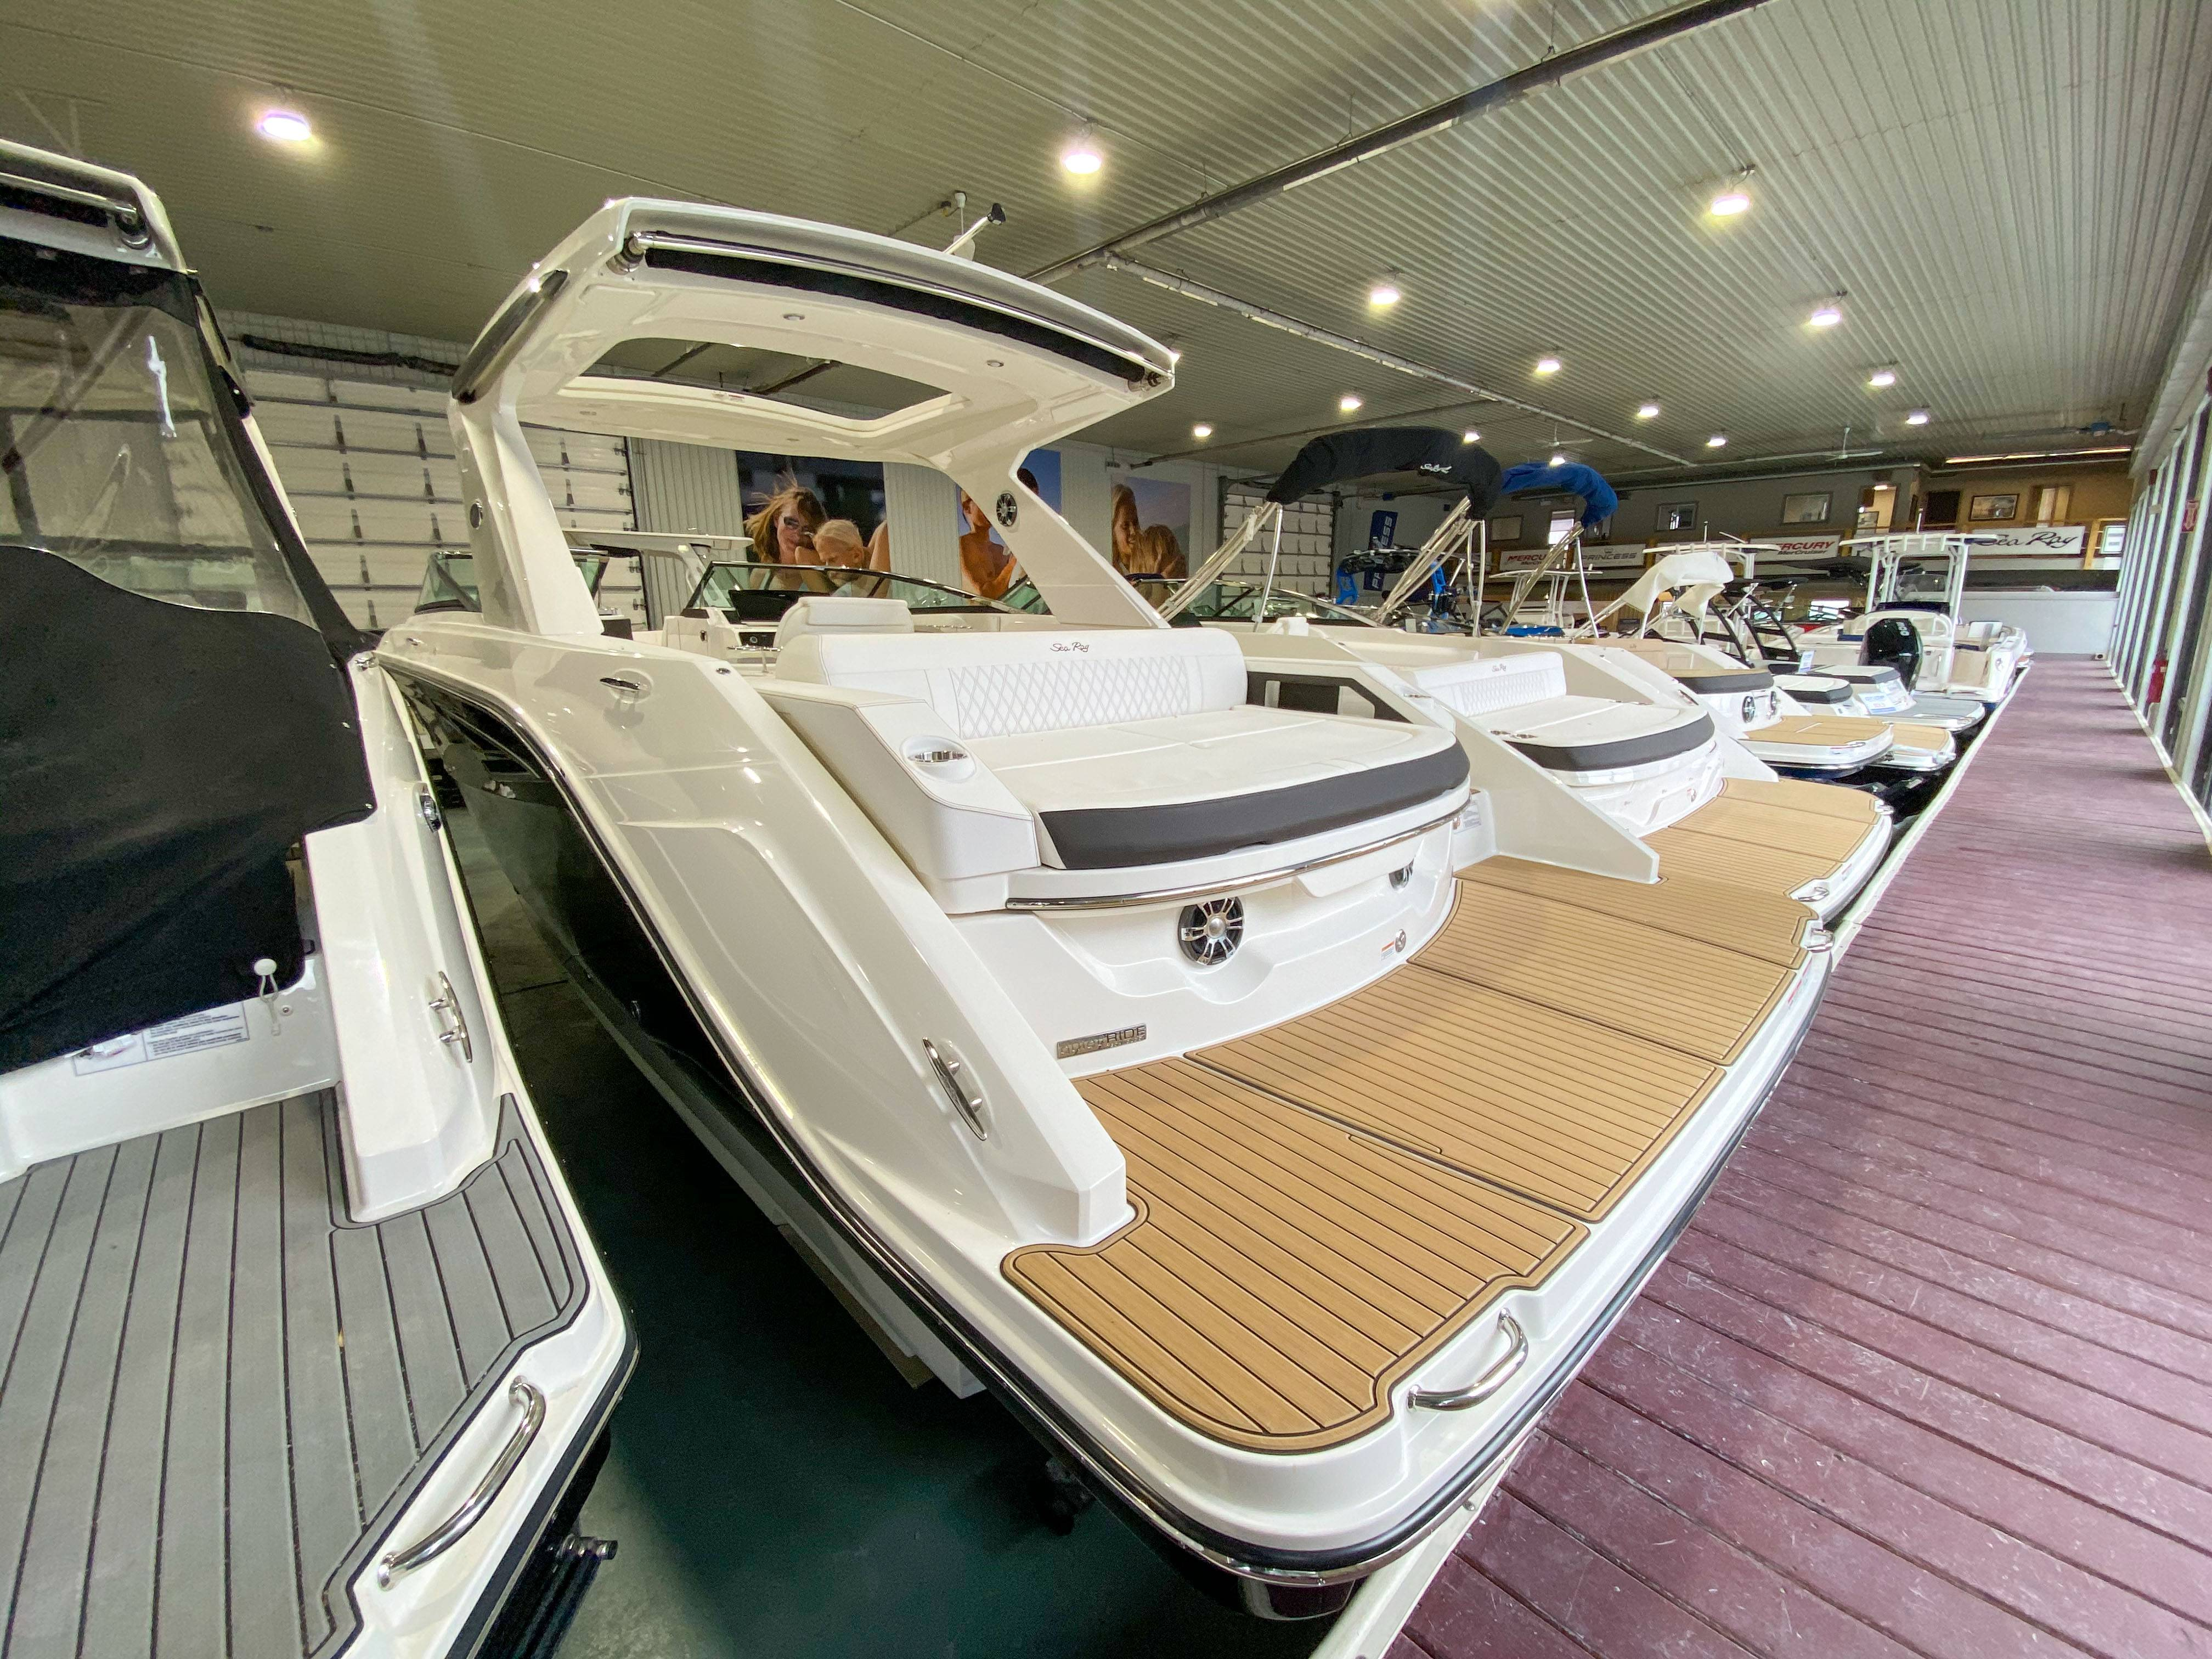 2021 Sea Ray boat for sale, model of the boat is SLX 310 & Image # 17 of 24